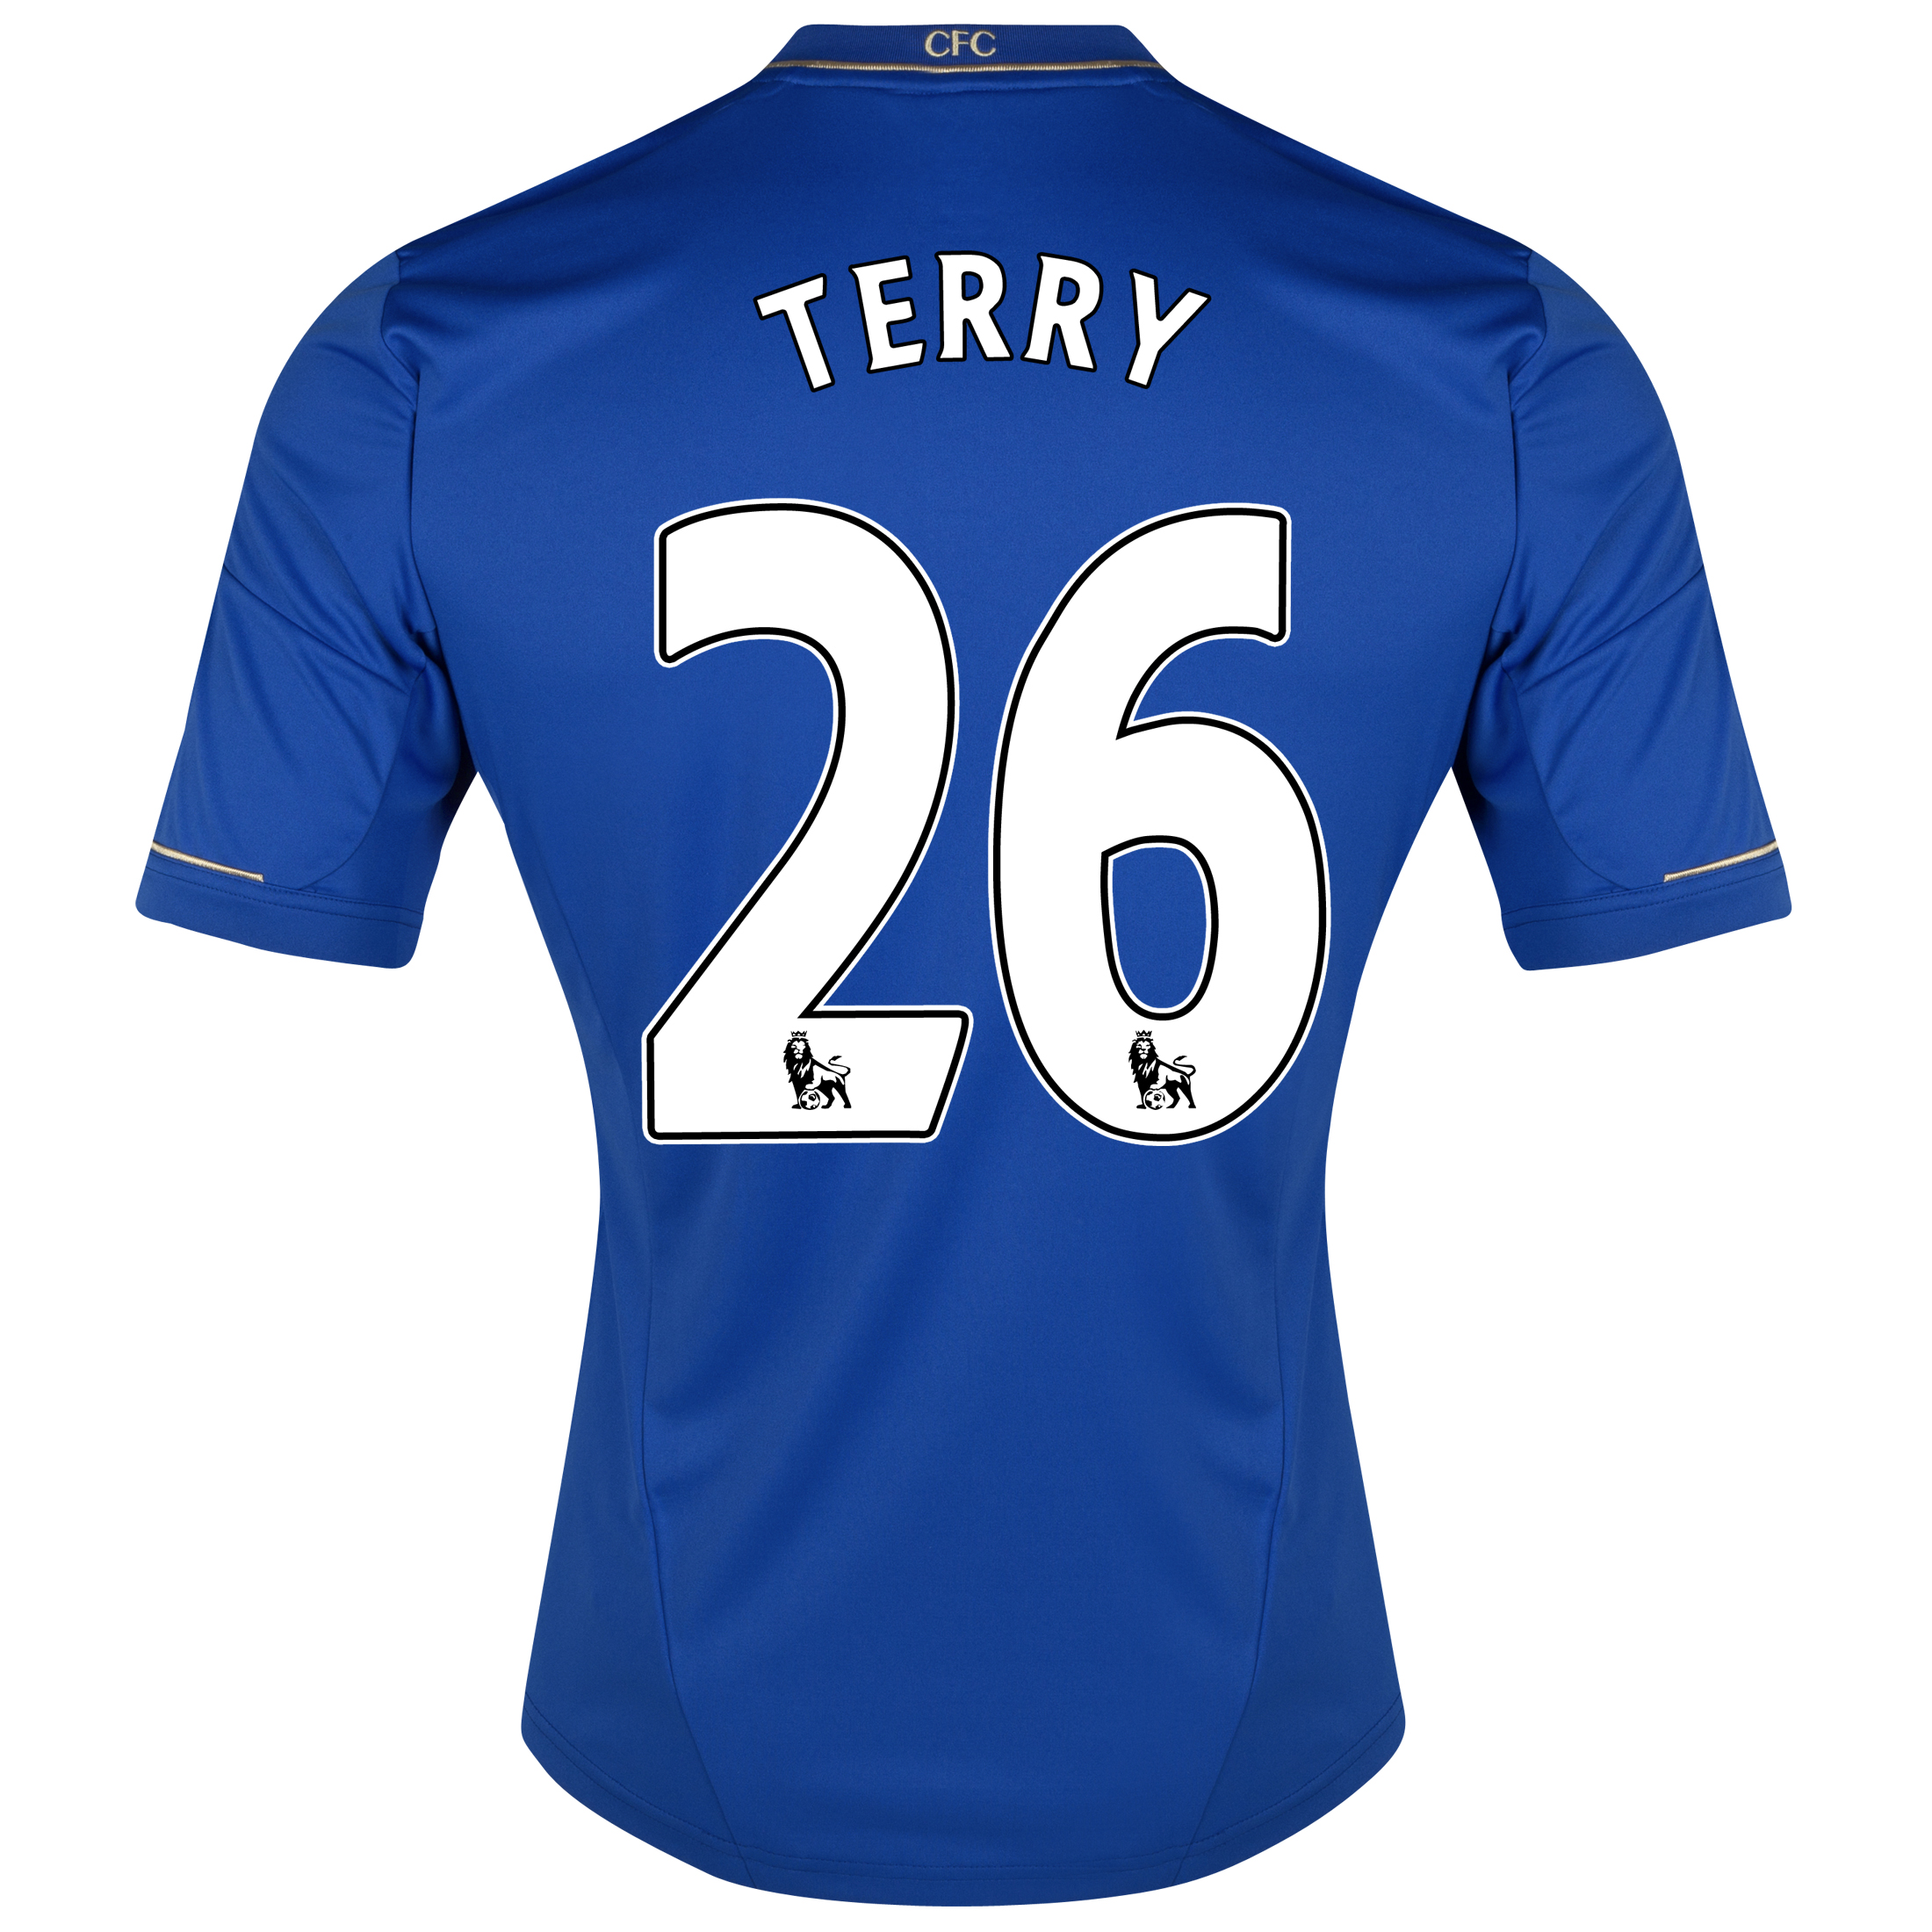 Chelsea Home Shirt 2012/13 - Youths with Terry 26 printing